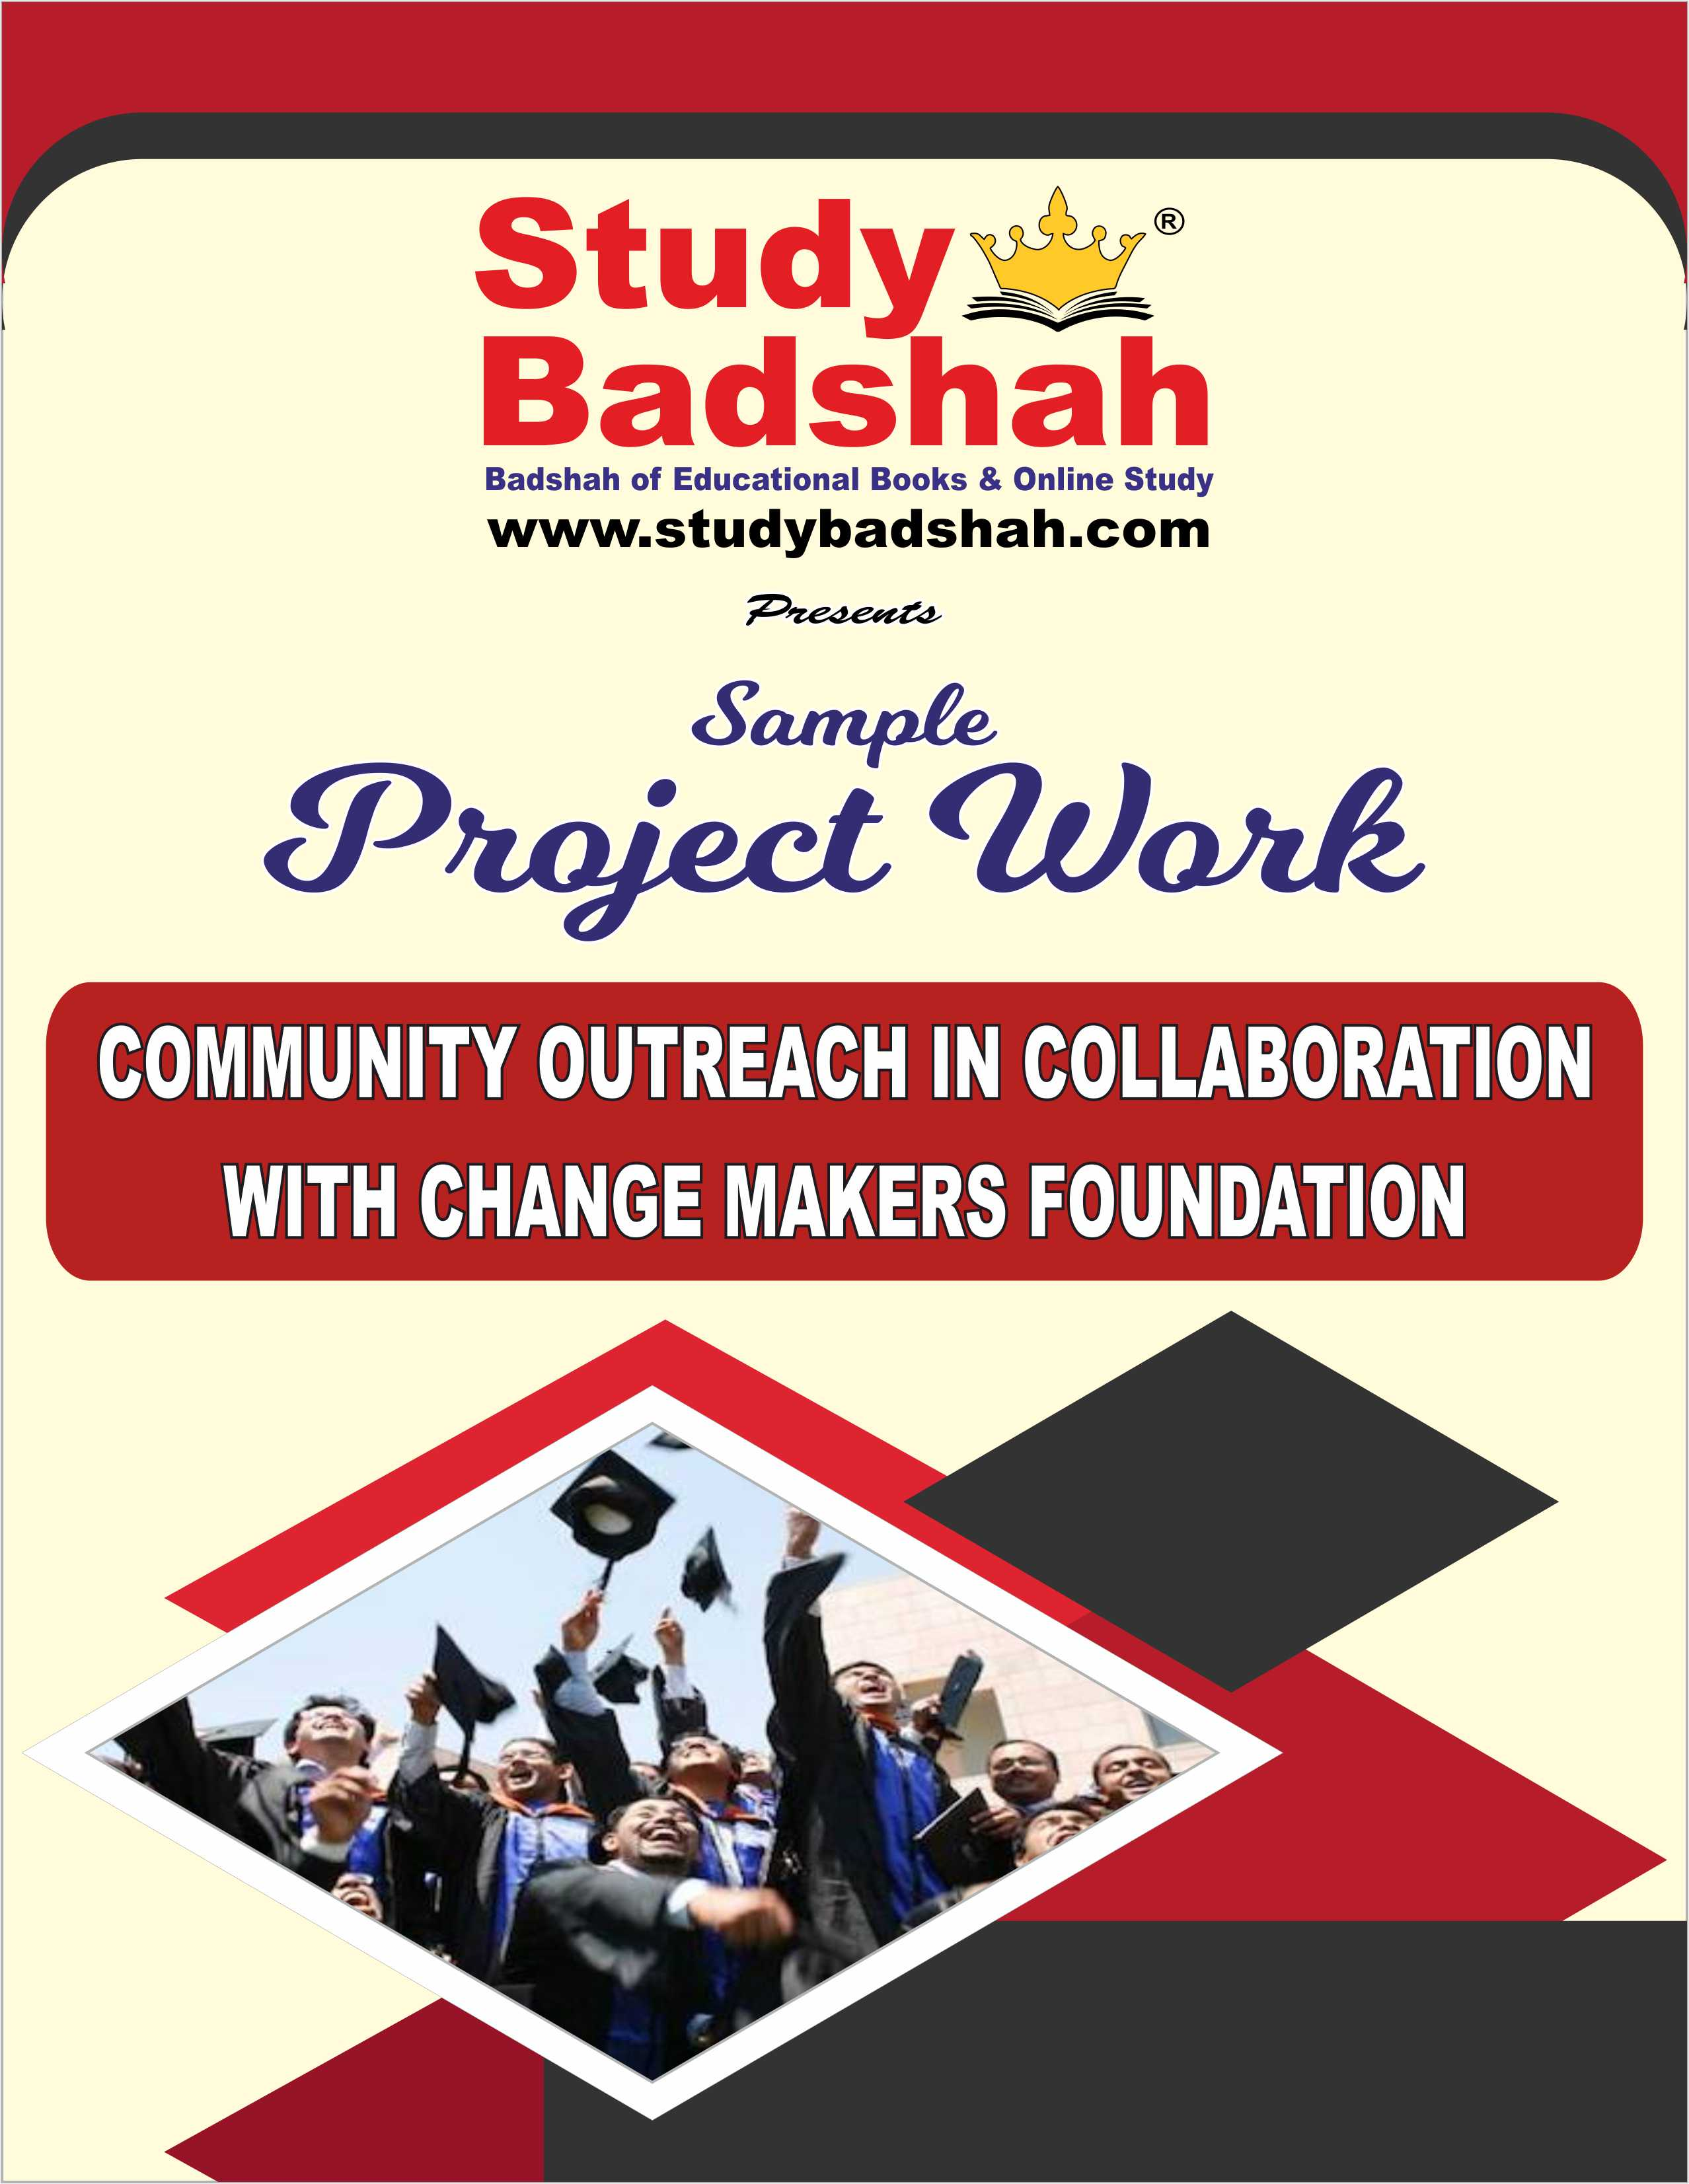 COMMUNITY OUTREACH IN COLLABORATION WITH CHANGE MAKERS FOUNDATION